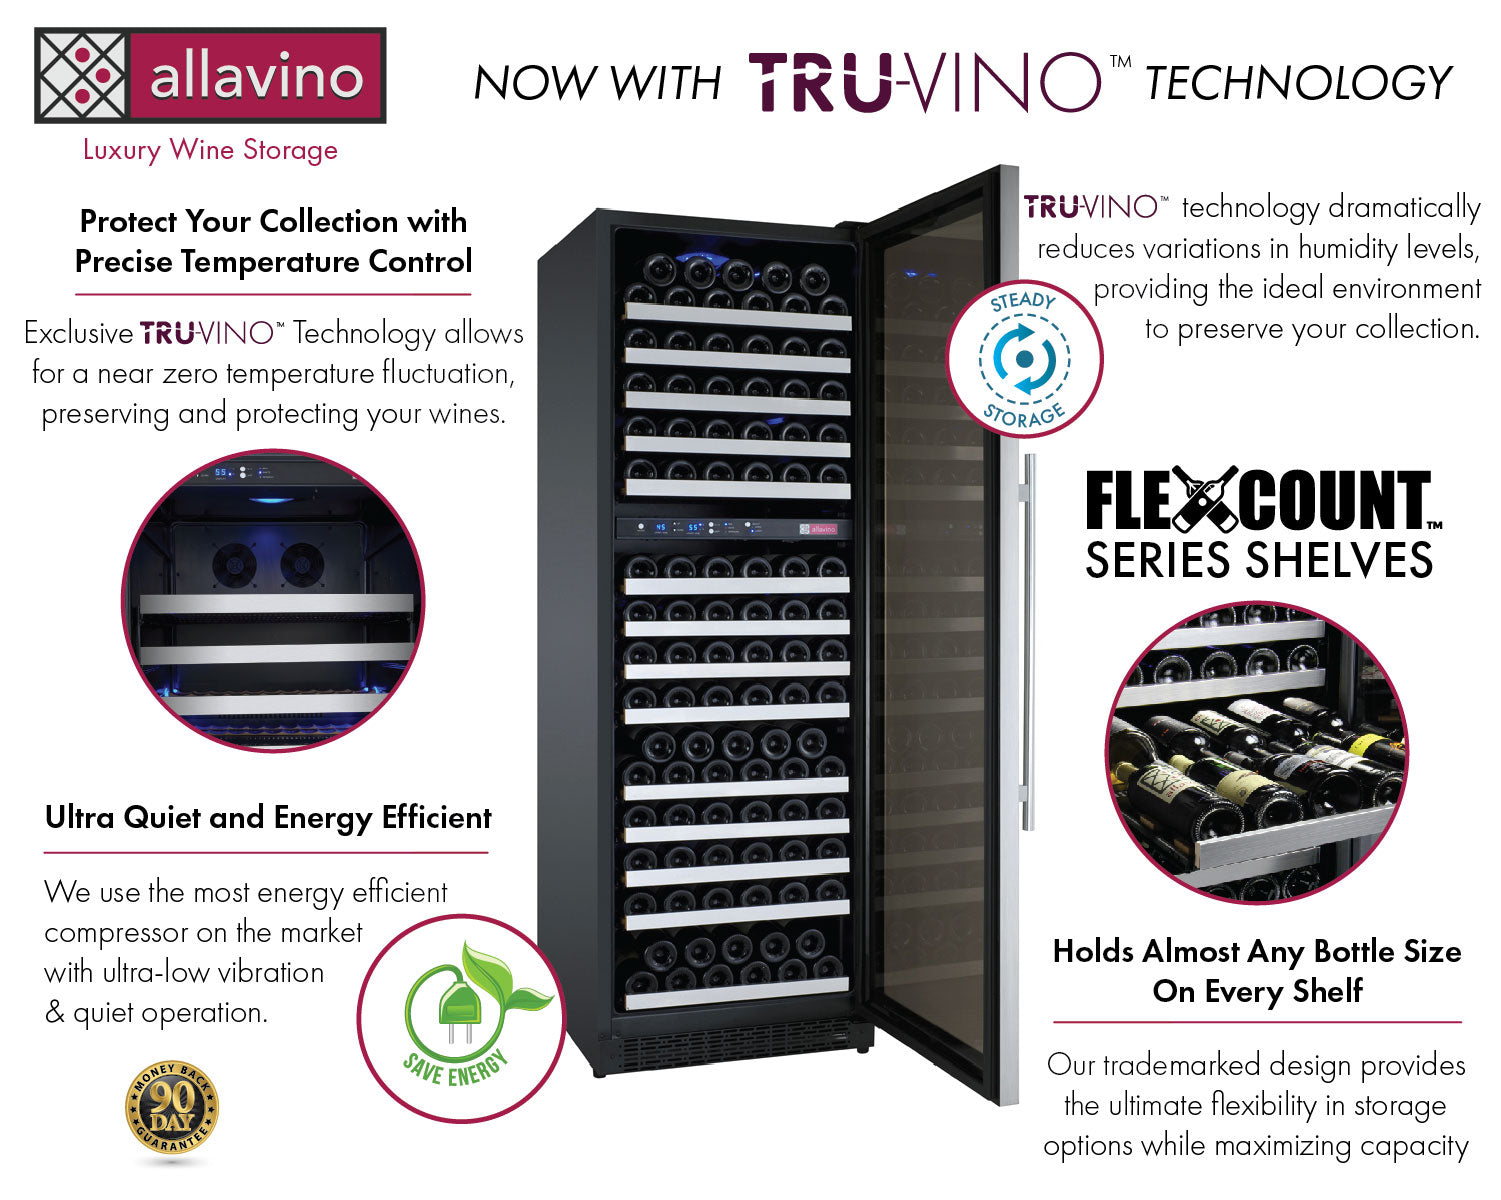 Allavino FlexCount Classic II Tru-Vino 172 Bottle Dual Zone Stainless Steel Right Hinge Wine Refrigerator YHWR172-2SR20